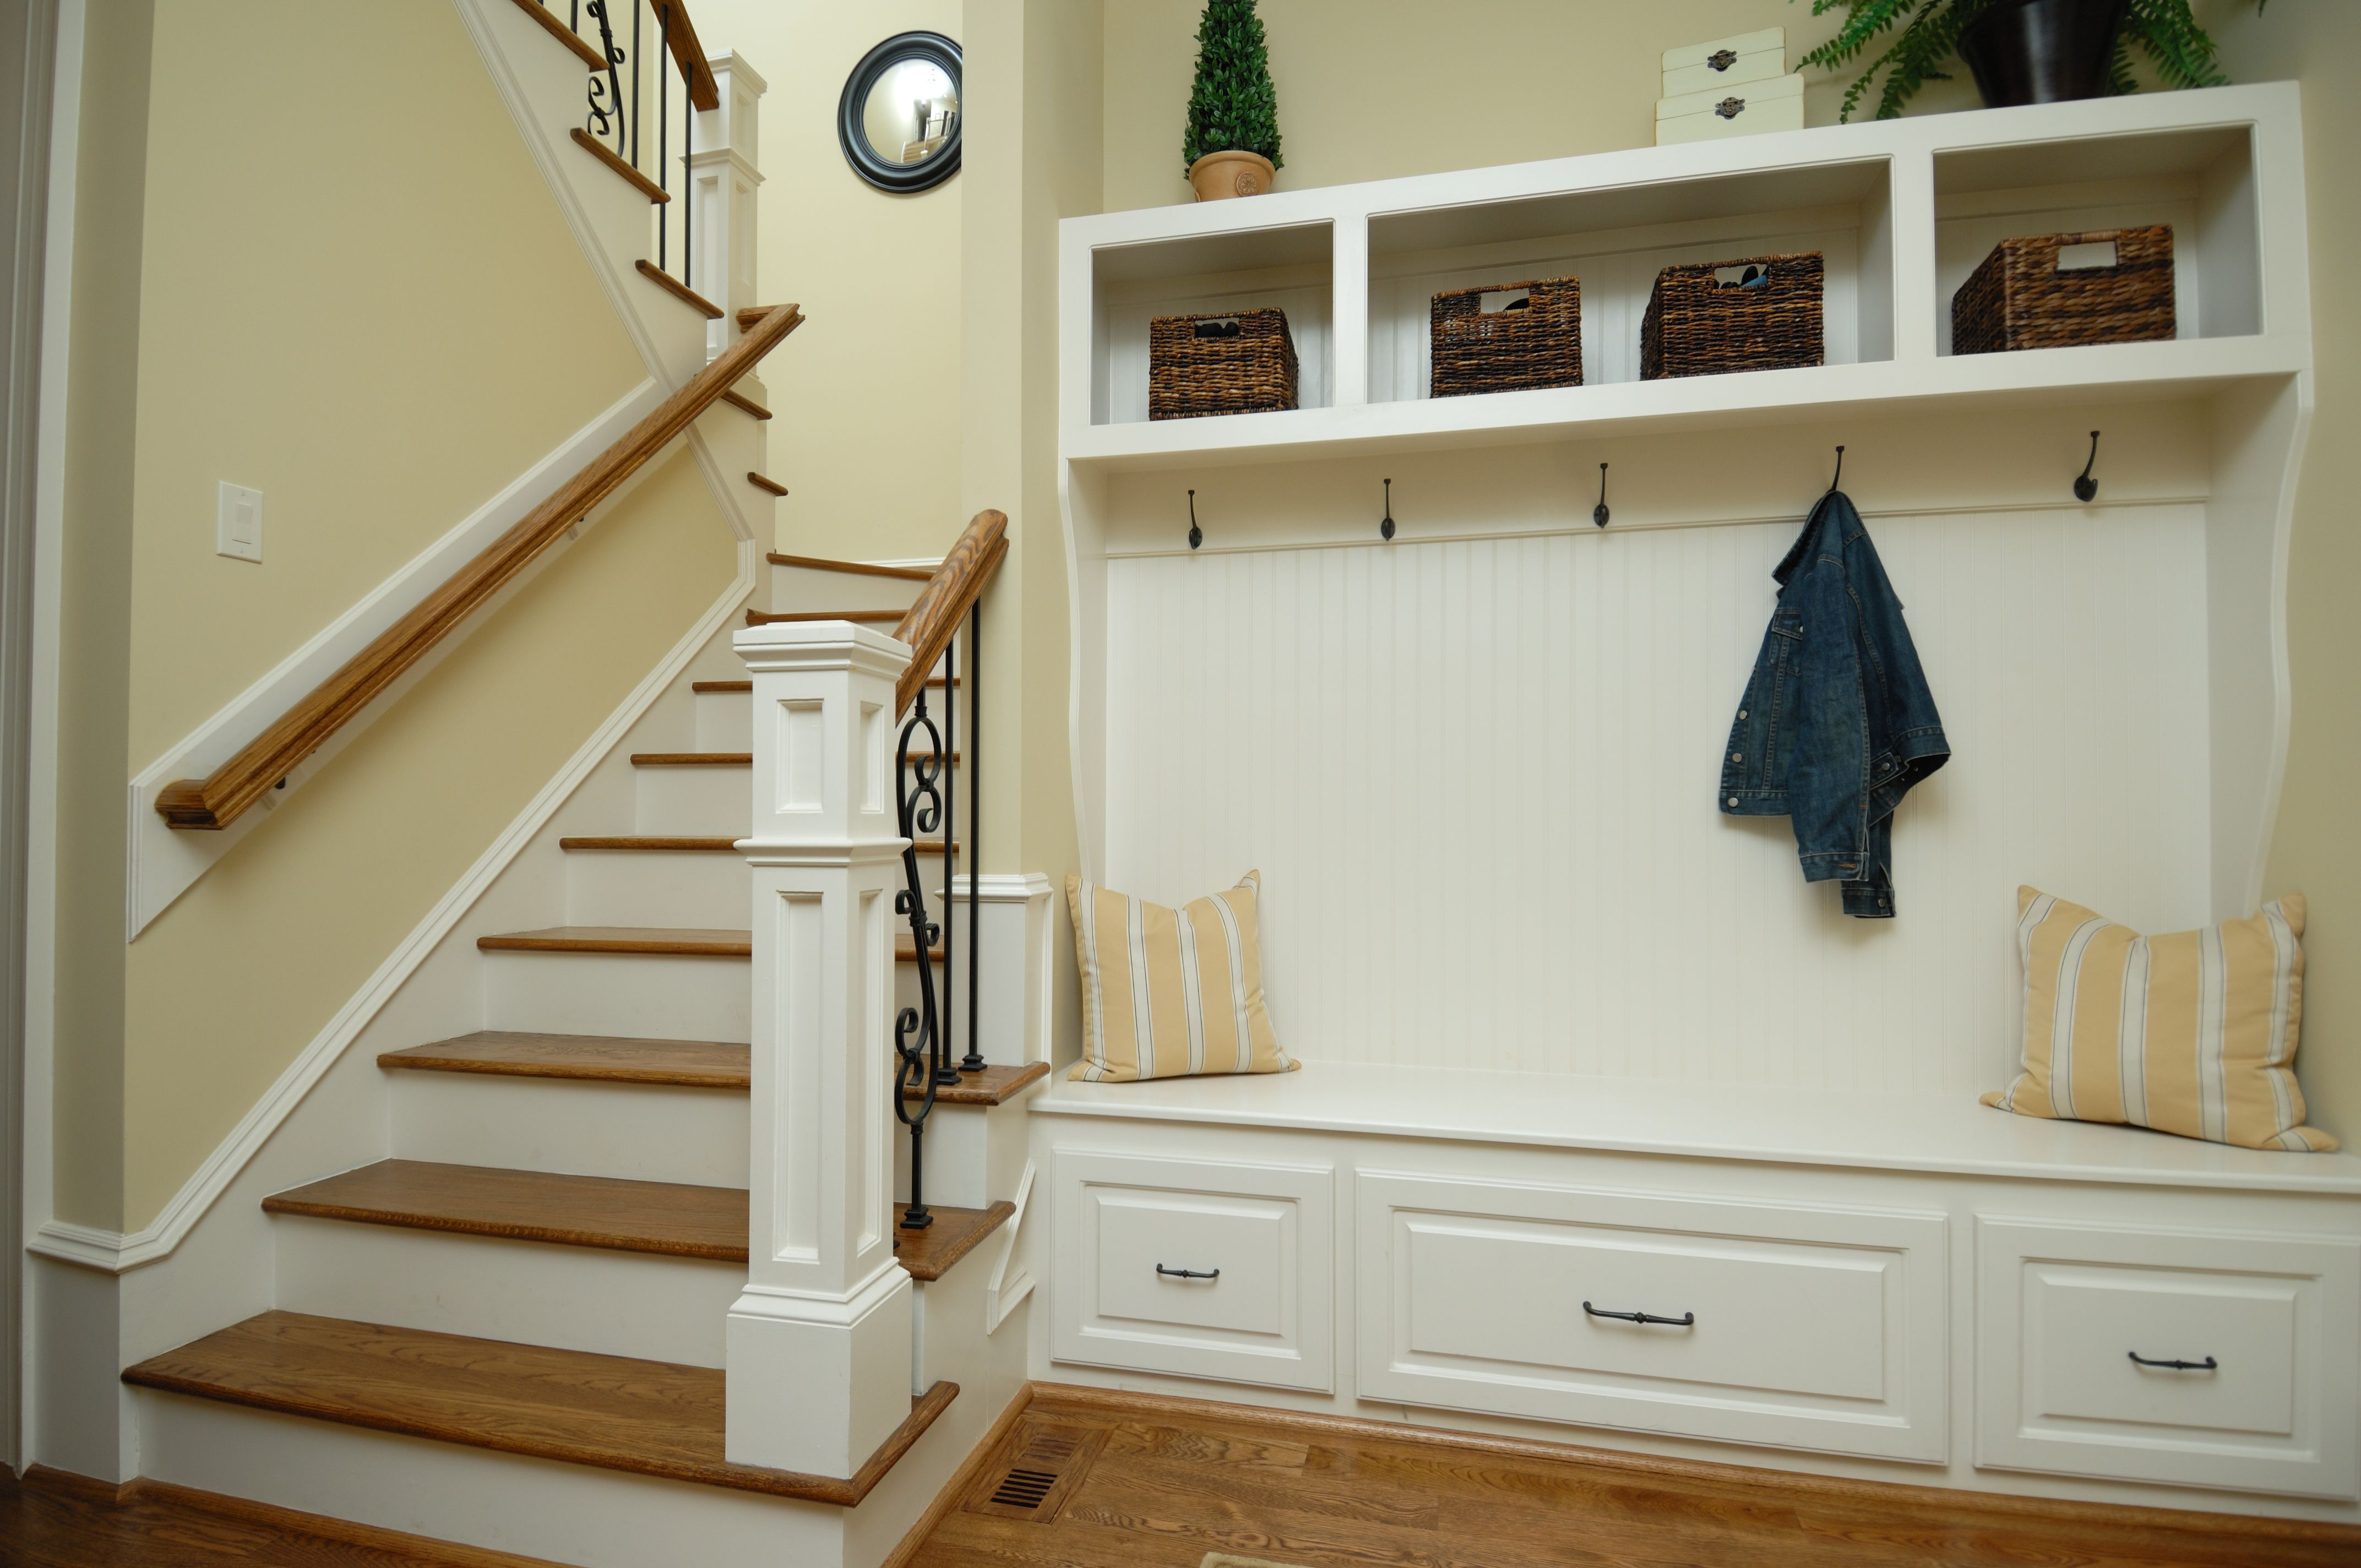 Maximize Your Space With These 15 Mudroom Storage Ideas